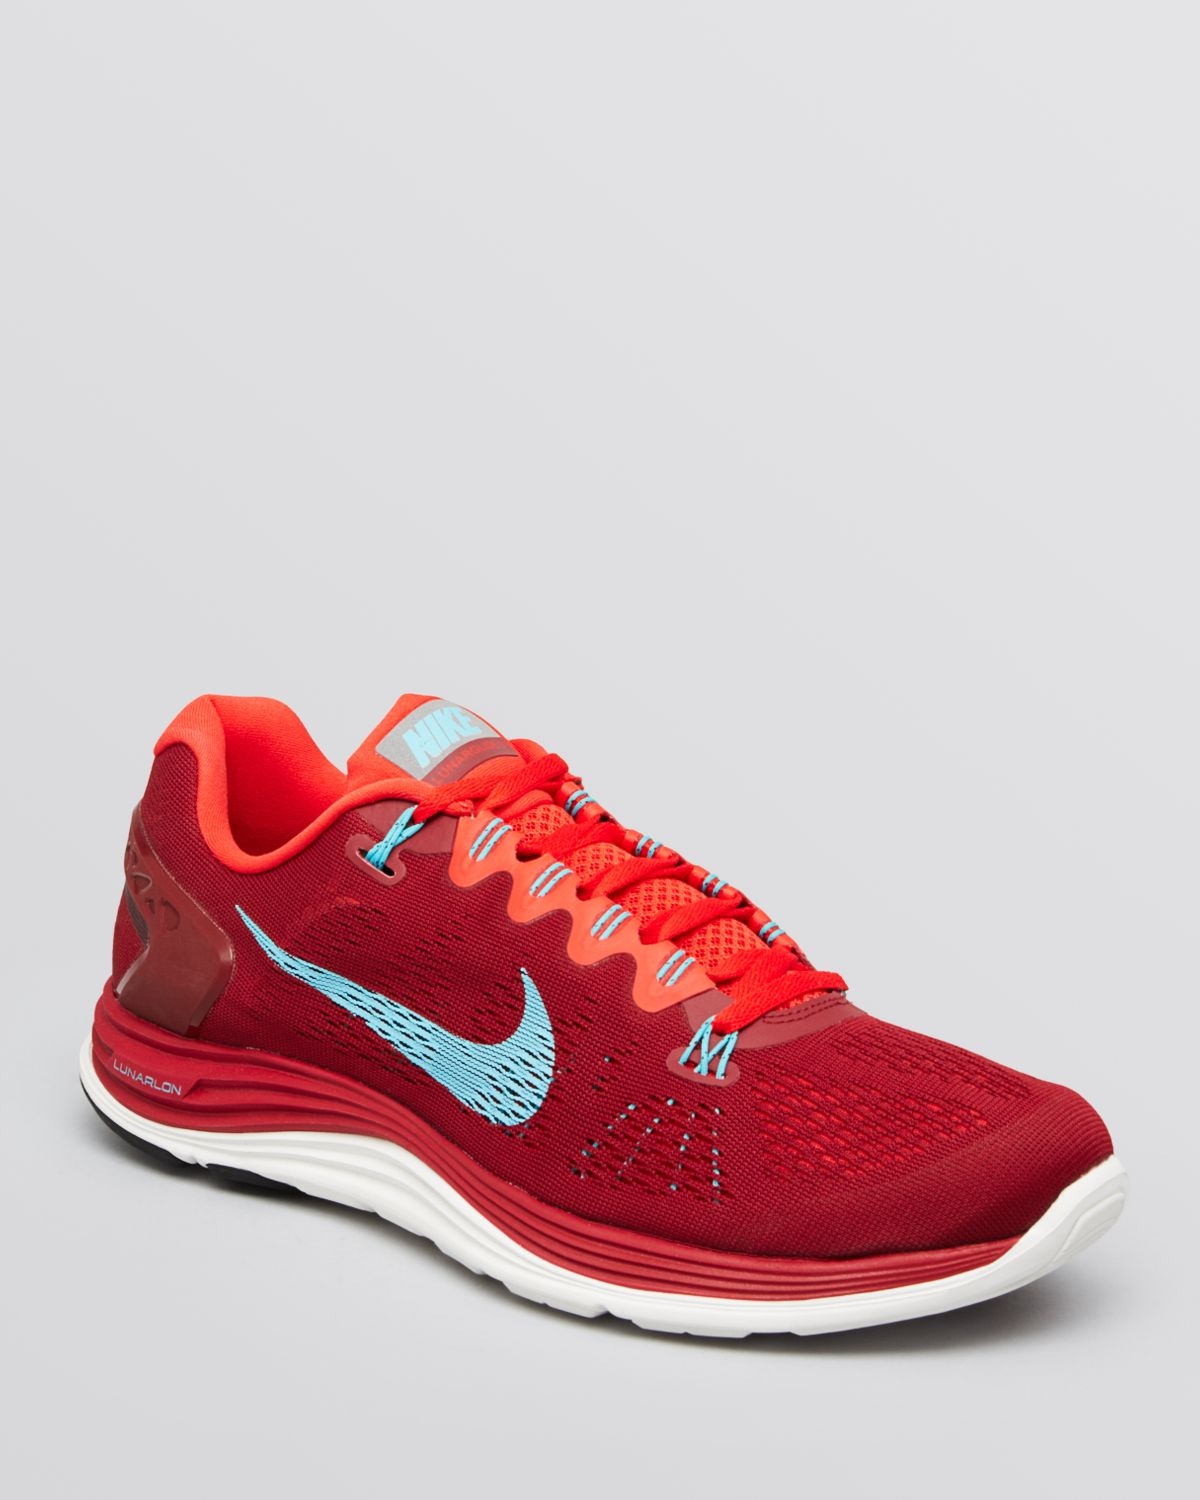 ee7eb39fa34 ... czech lyst nike lunarglide 5 sneakers in red for men 22056 248cb